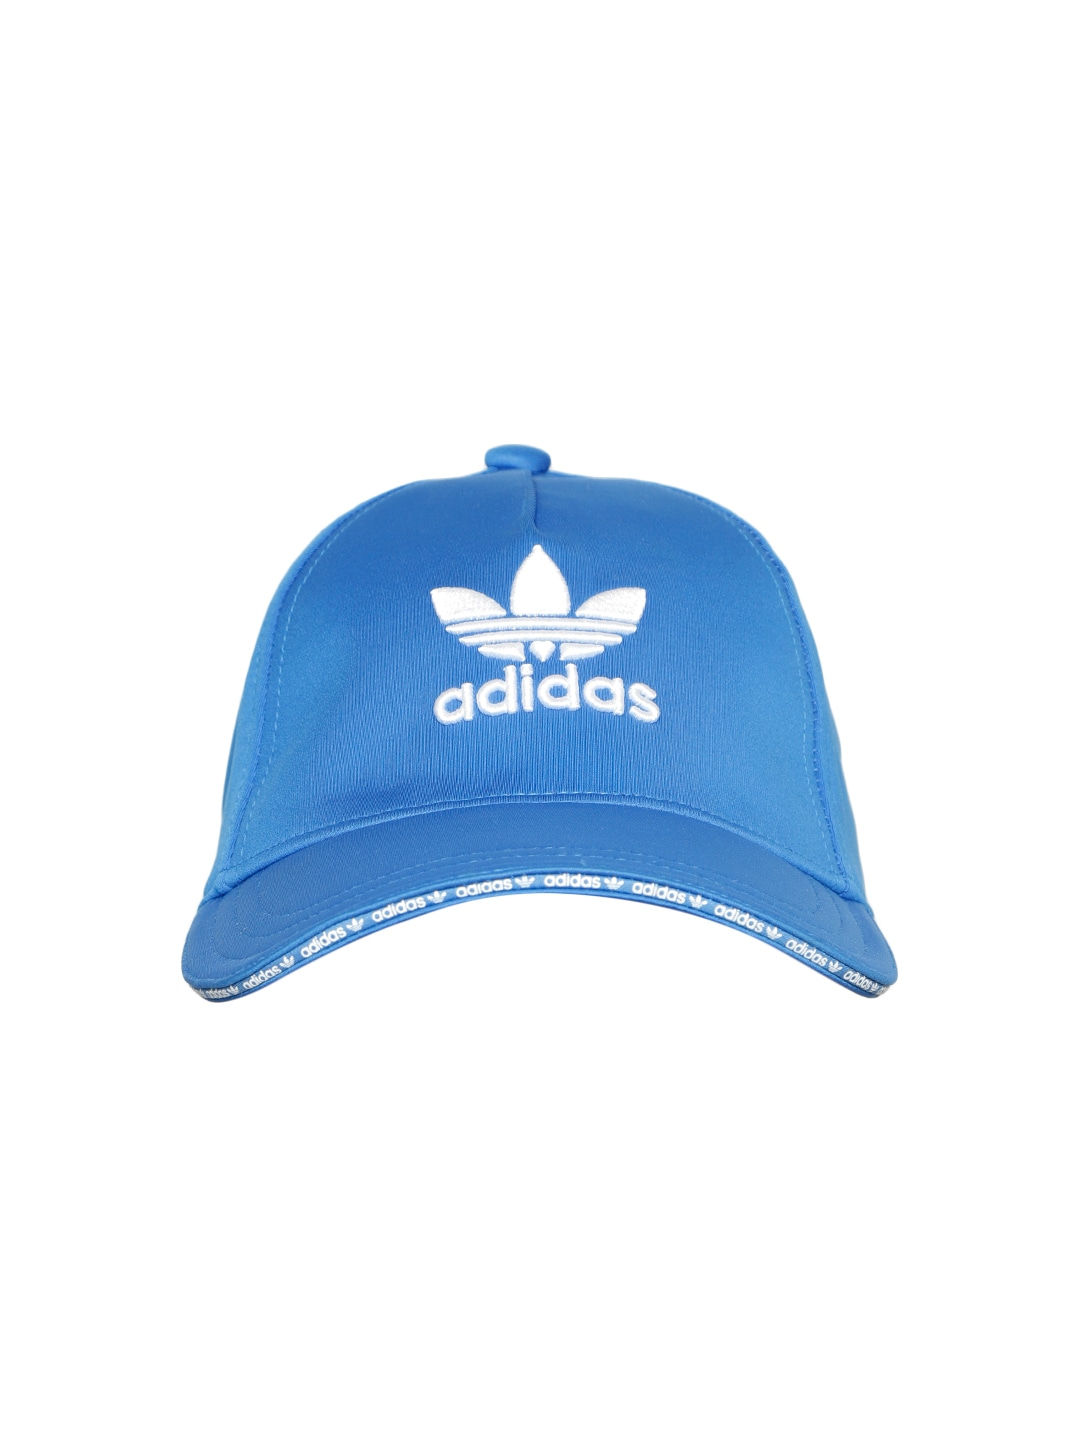 White Adidas Cap Tights Bags - Buy White Adidas Cap Tights Bags online in  India d676ef3c4a5b